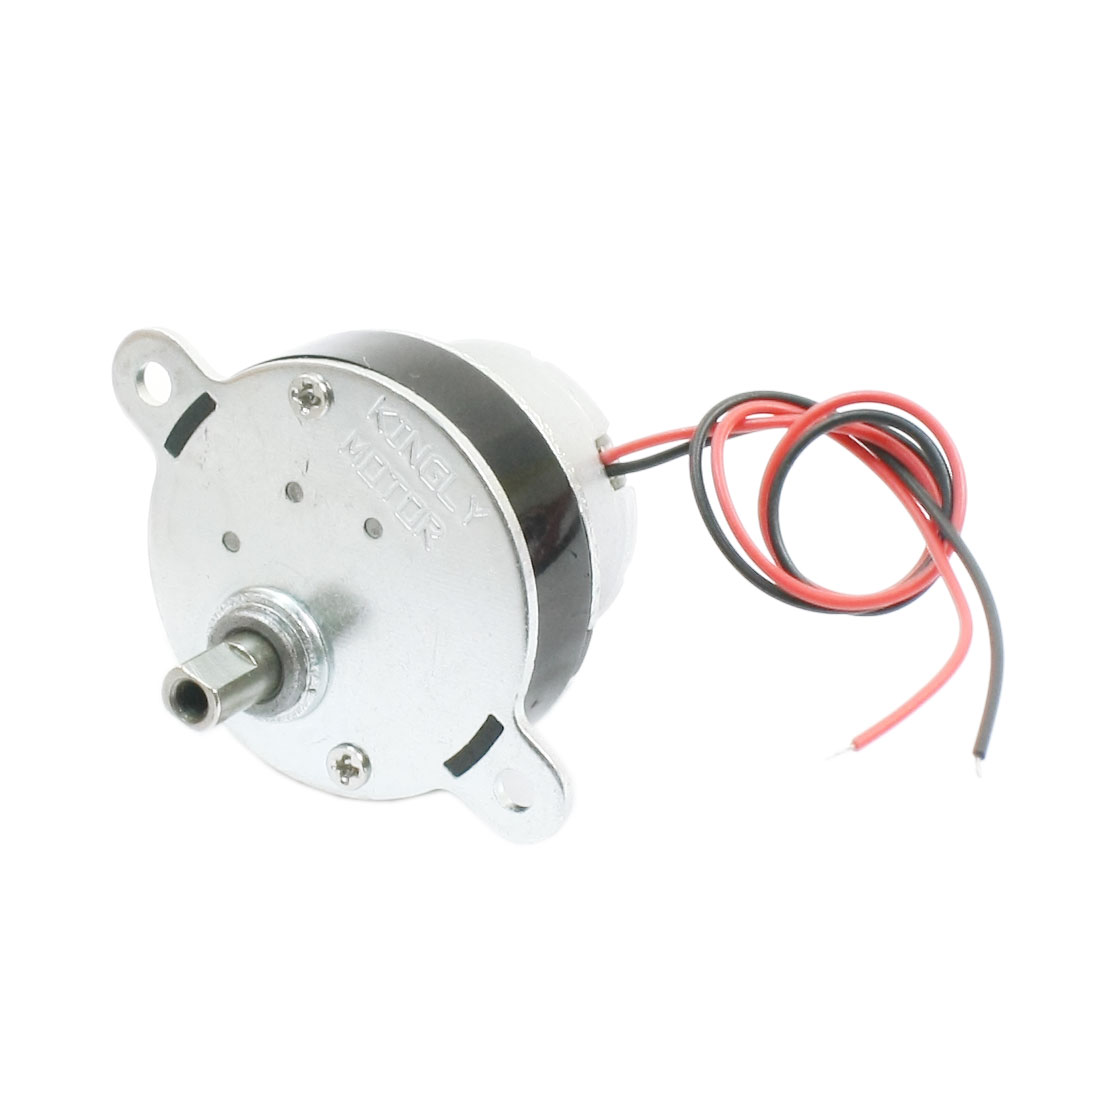 DC6V 5mm Drive Shaft 2-Wire Connecting 30 r/min Output High Torque Speed Reducing Geared Box Motor